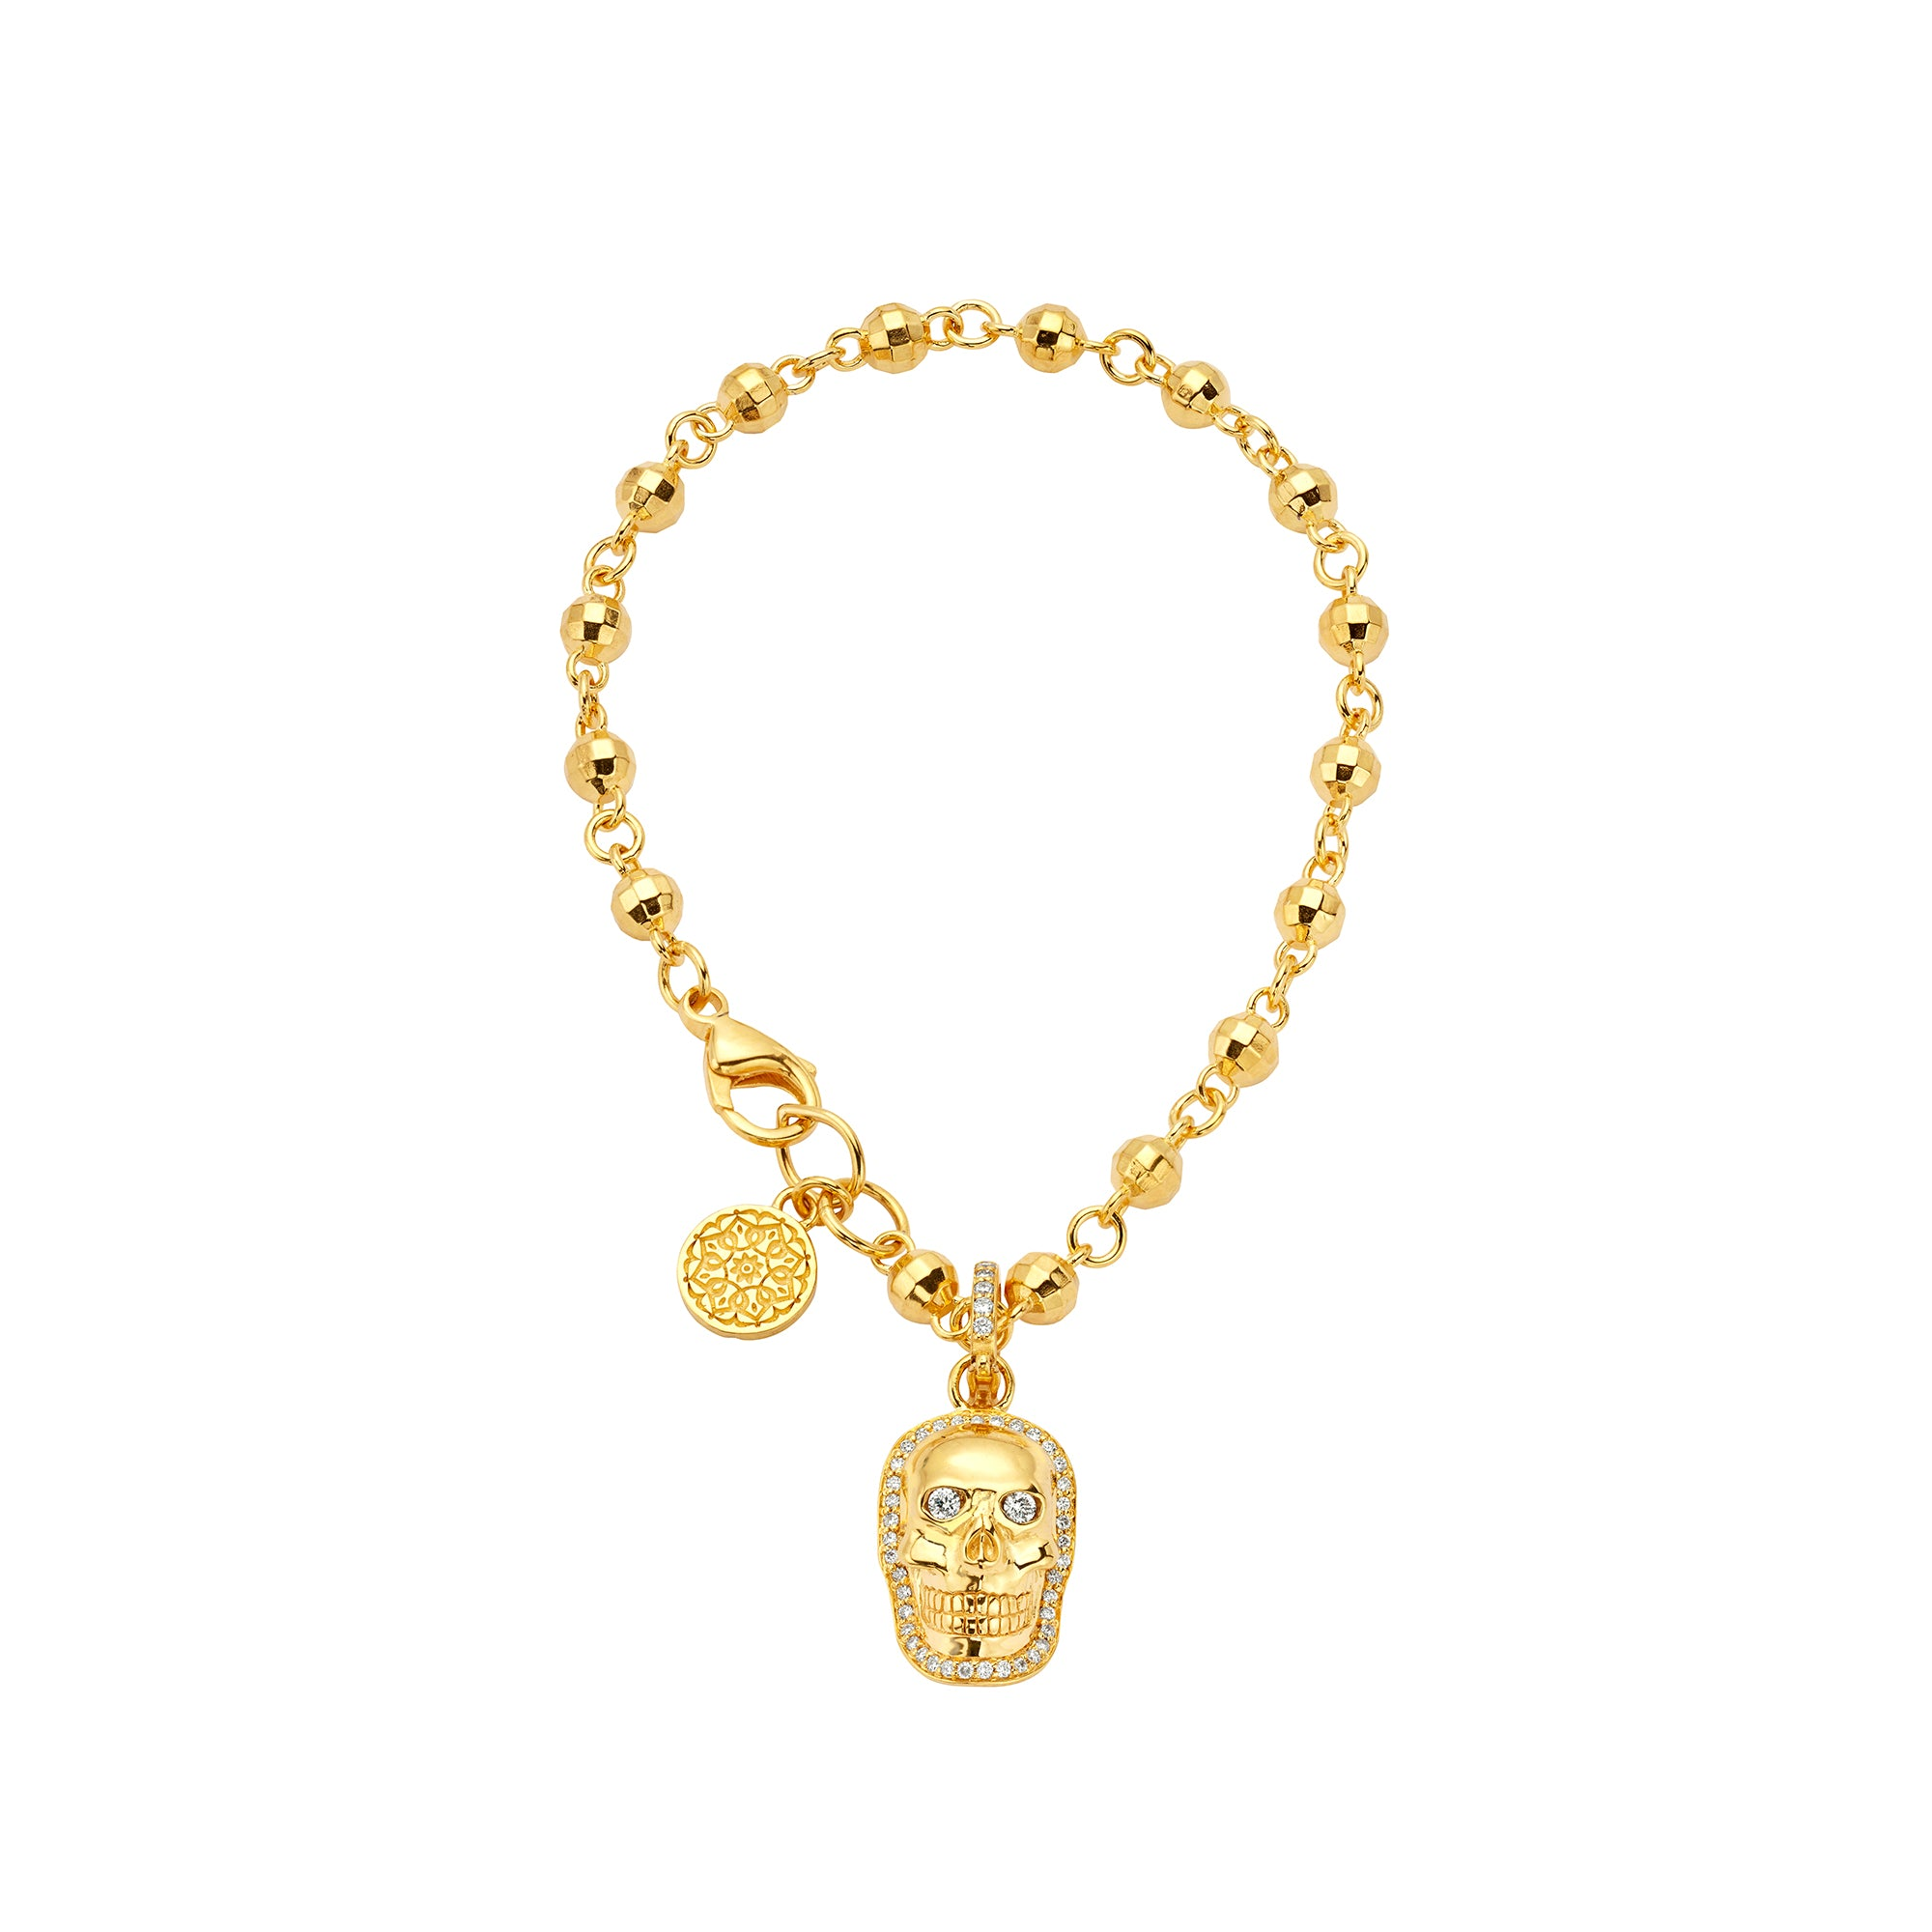 Small Diamond Skull Pendant - Buddha Mama - Charms & Pendants | Broken English Jewelry